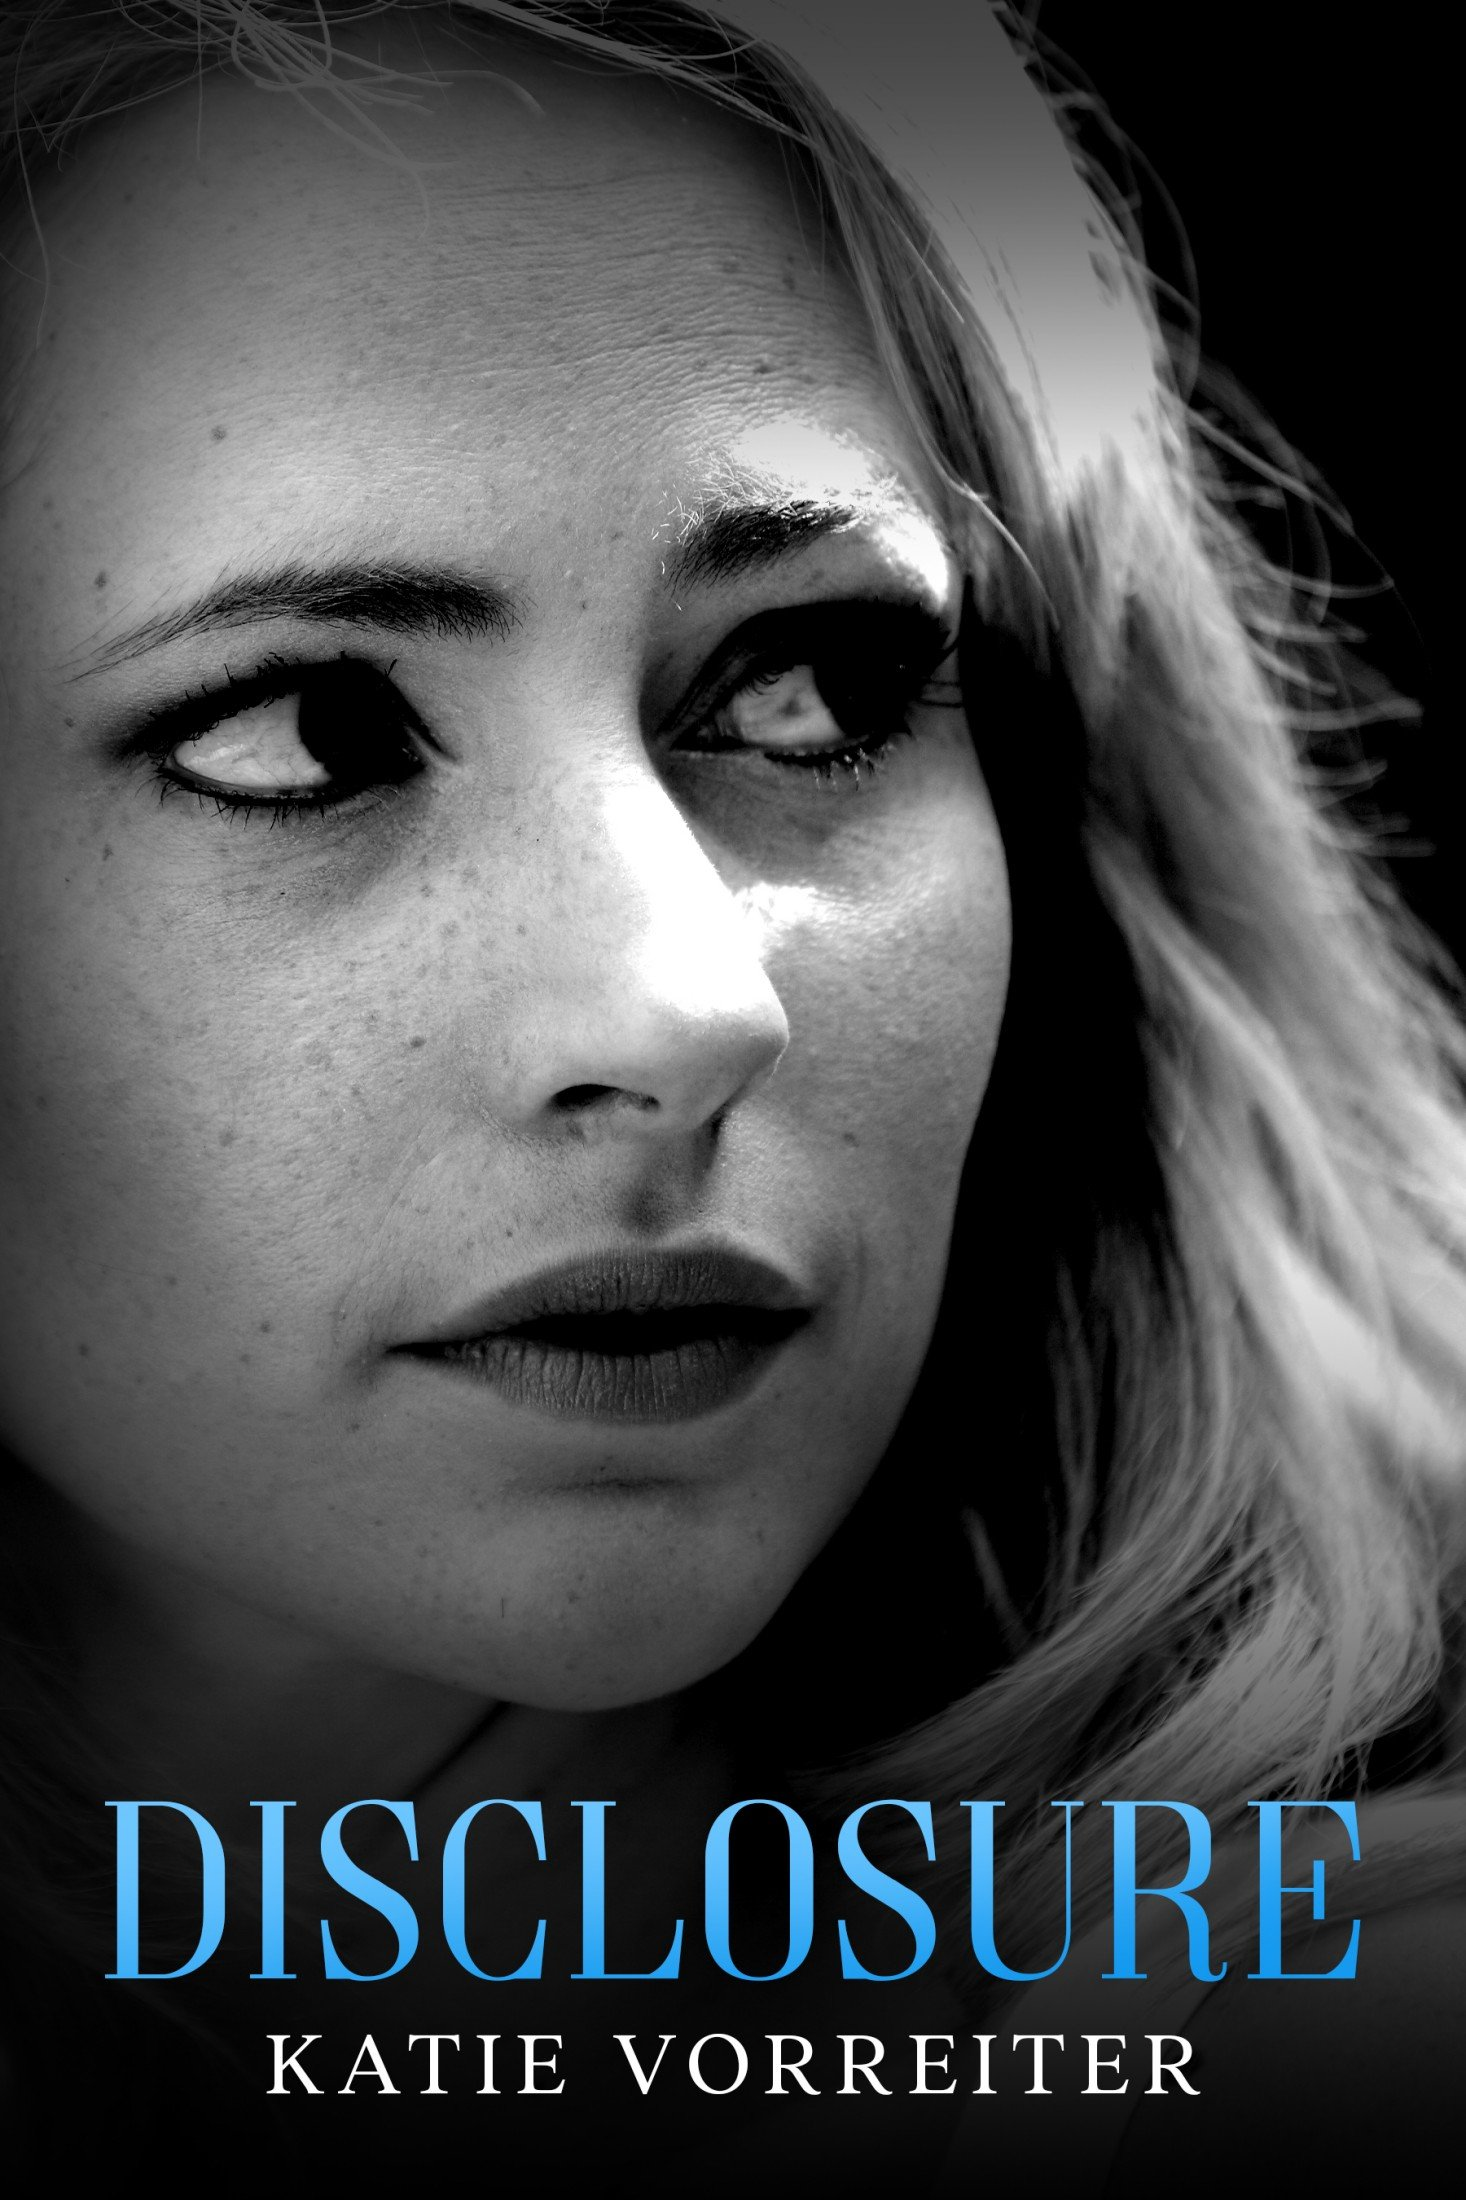 Book cover: young blond woman looking over her shoulder with concern